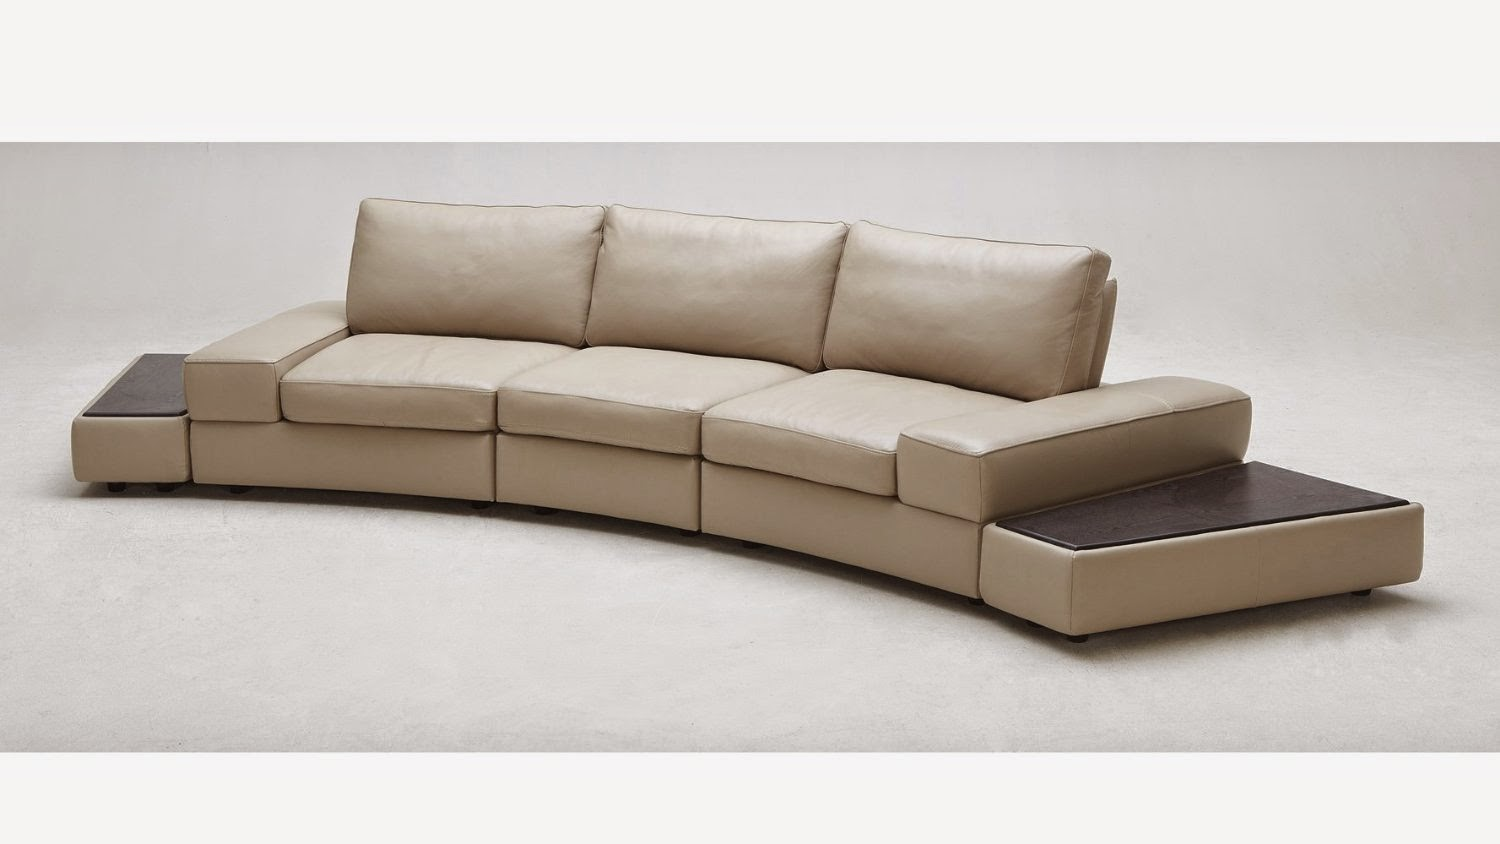 Curved sofa couch for sale large curved corner sofas Curved loveseat sofa